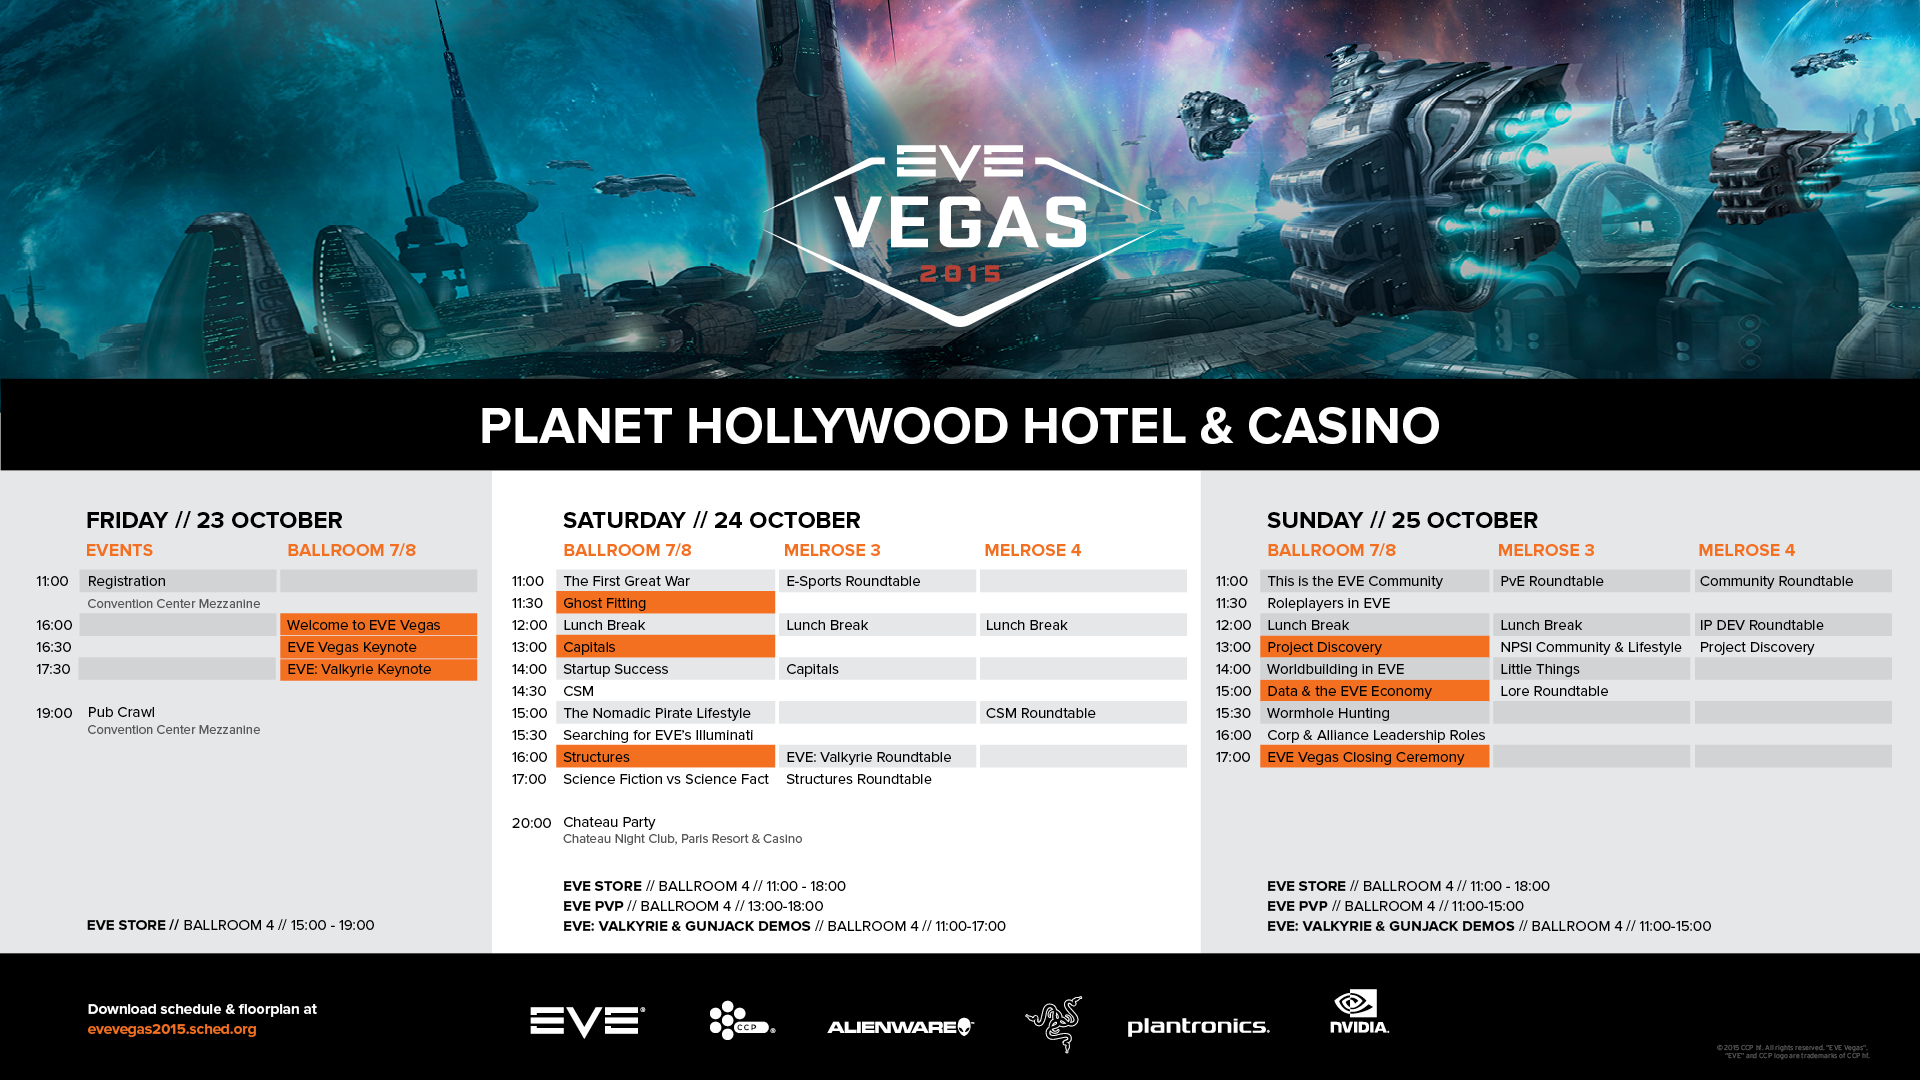 Lots of interesting panels, presentations and fun things to do happened at EVE Vegas 2015 - perhaps I should plan to go next year.